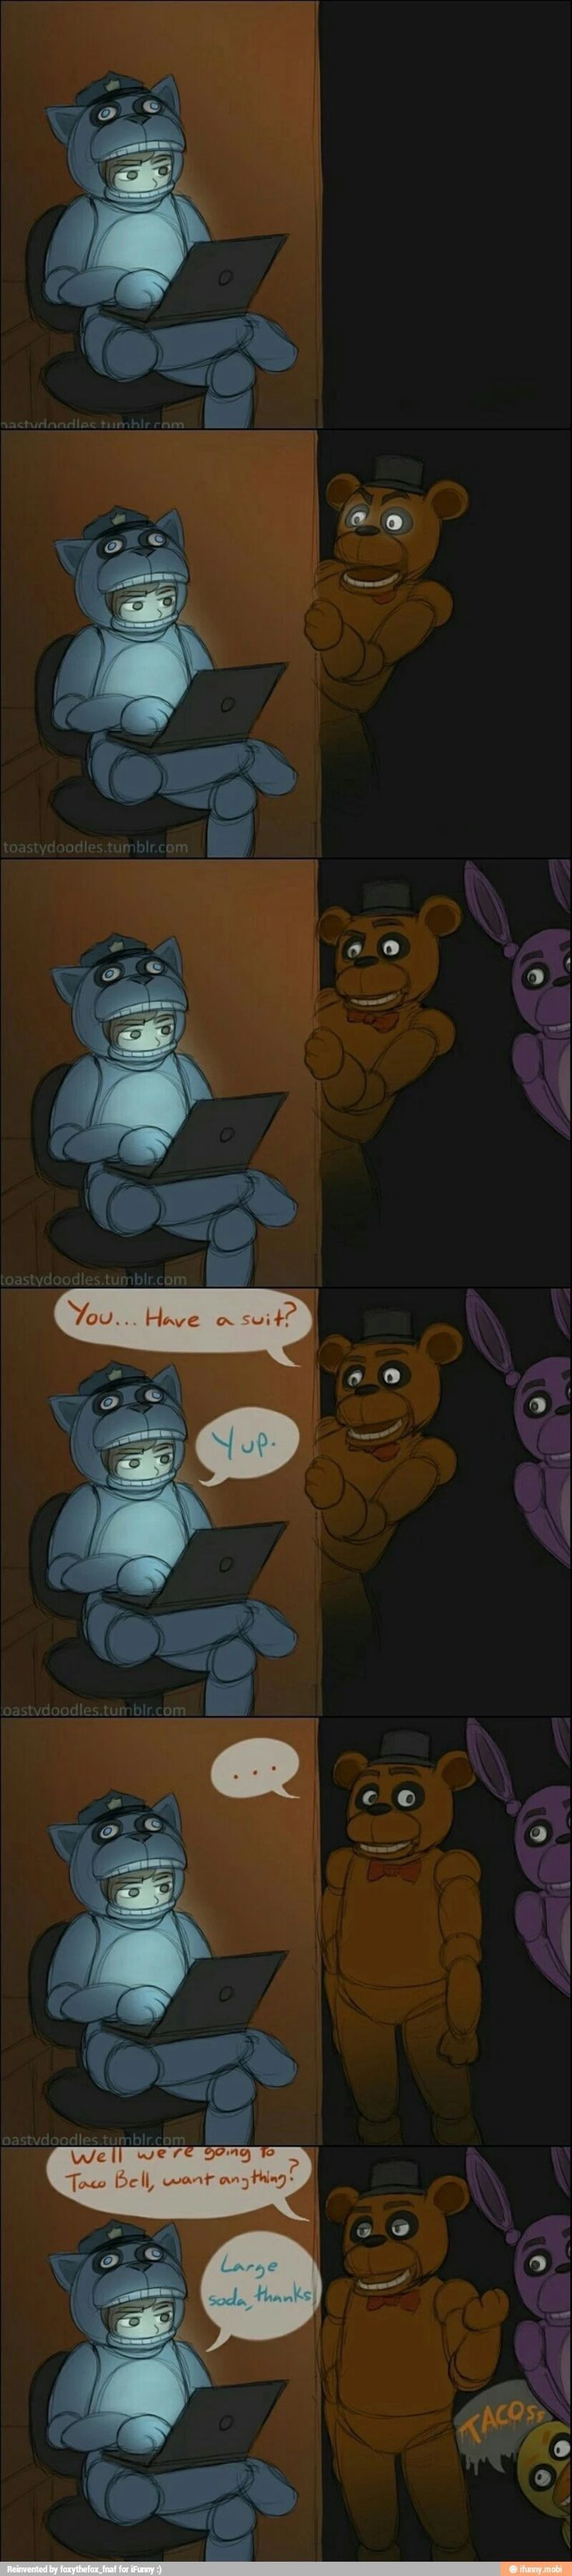 Funny Picture about Five Nights at Freddy's